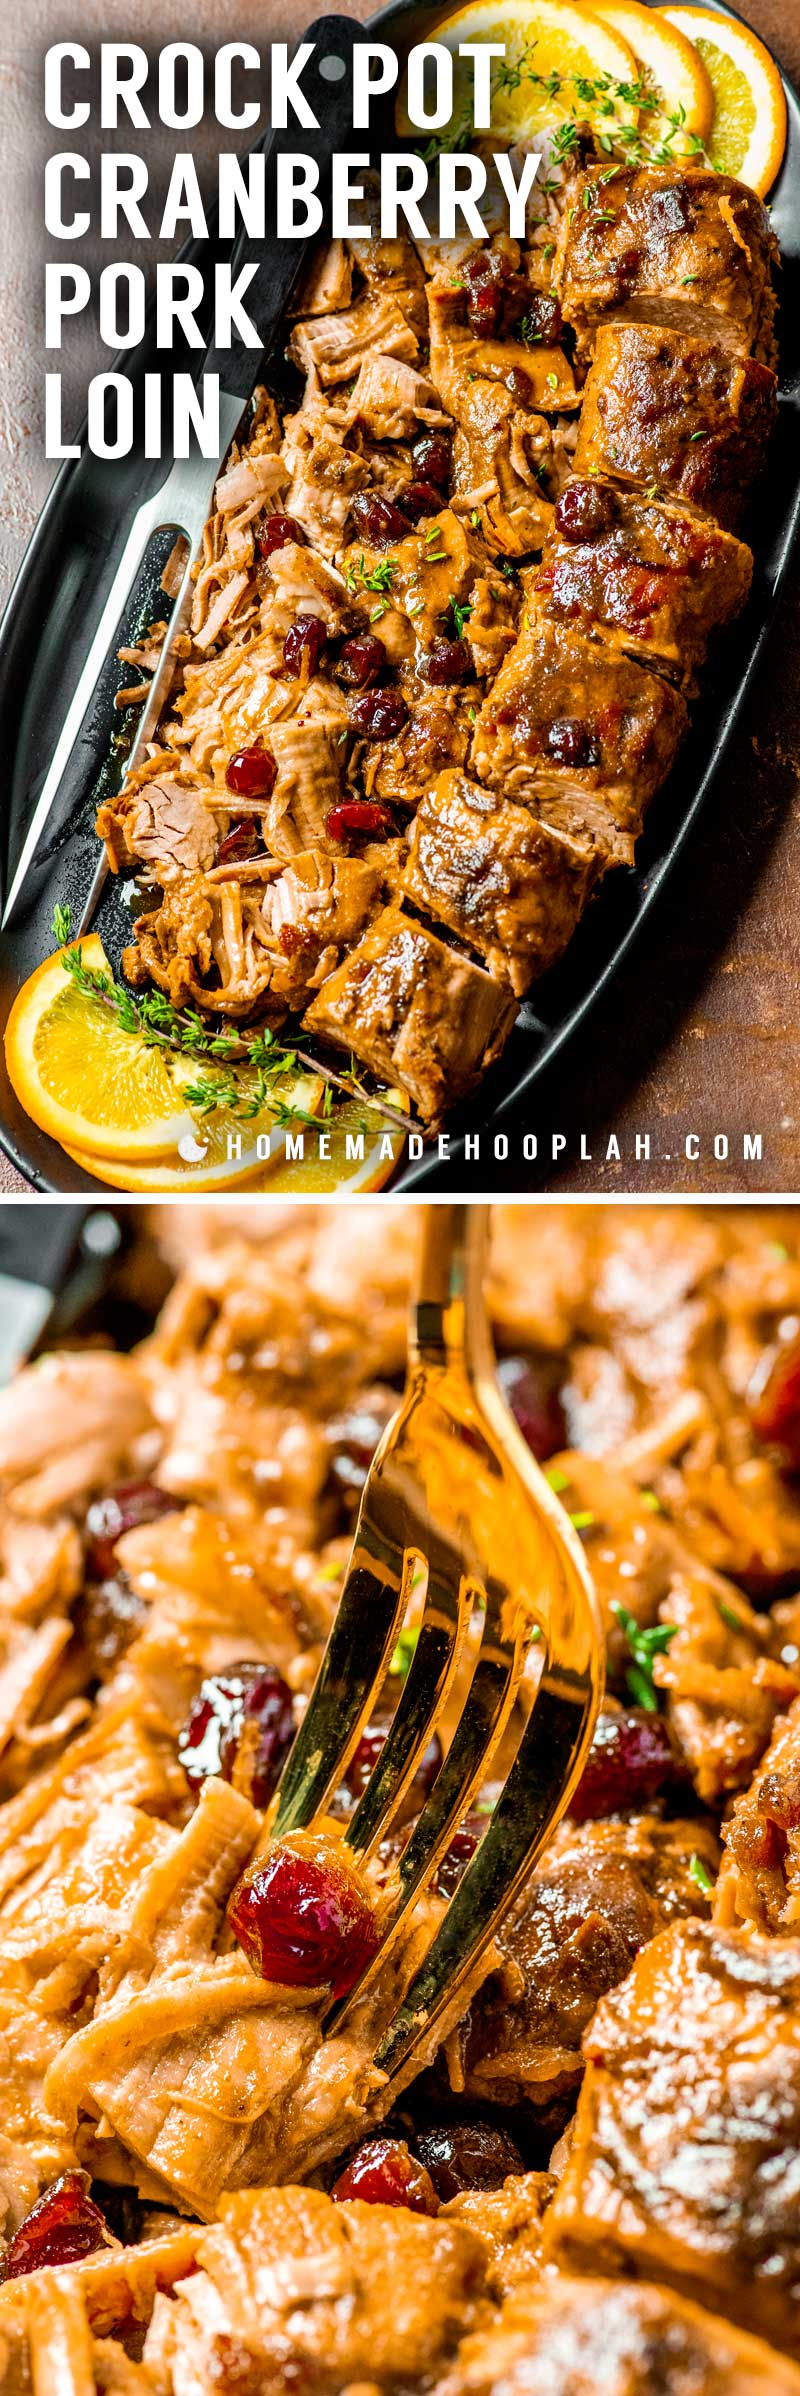 Crock Pot Cranberry Pork Loin! Ultra tender and flavorful crock pot cranberry pork loin is slowly cooked in a citrus cranberry sauce, making it an easy dinner for any cold weather holiday. | HomemadeHooplah.com